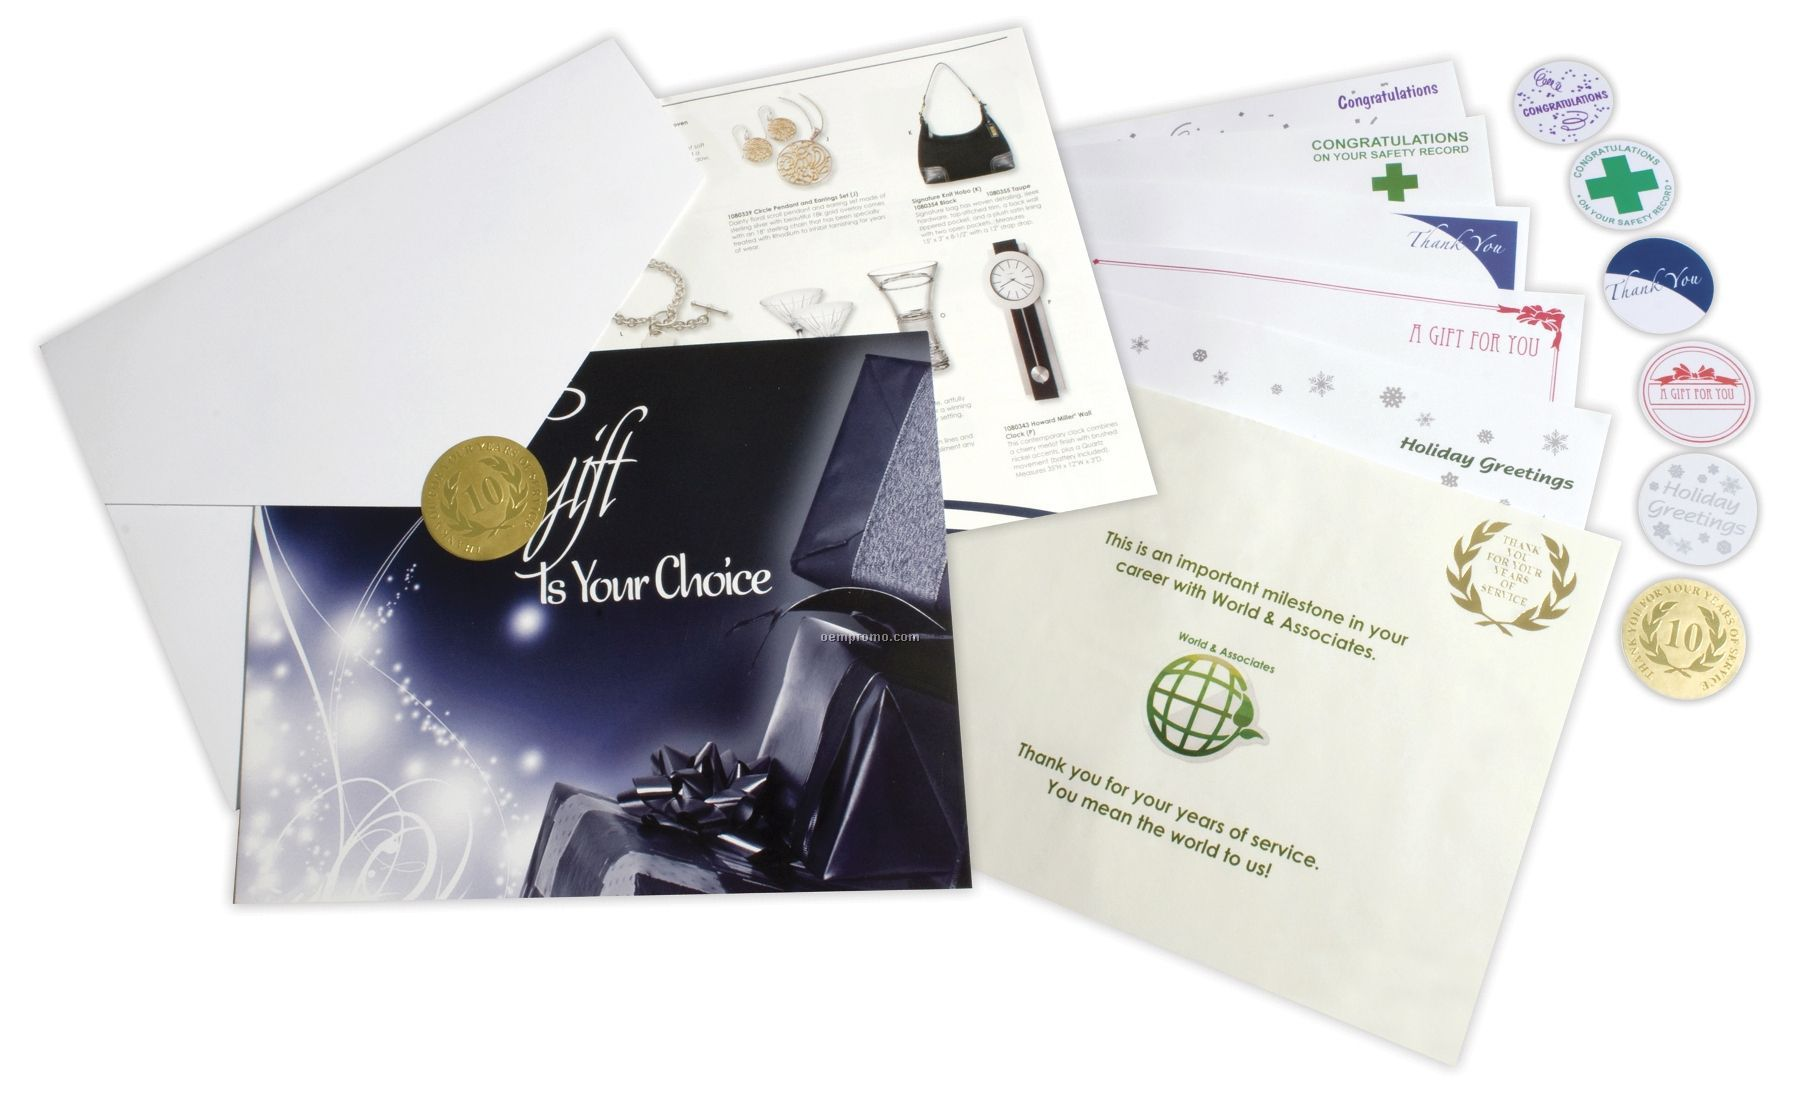 $375 Gift Of Choice (Bronze Level) Gift Booklet